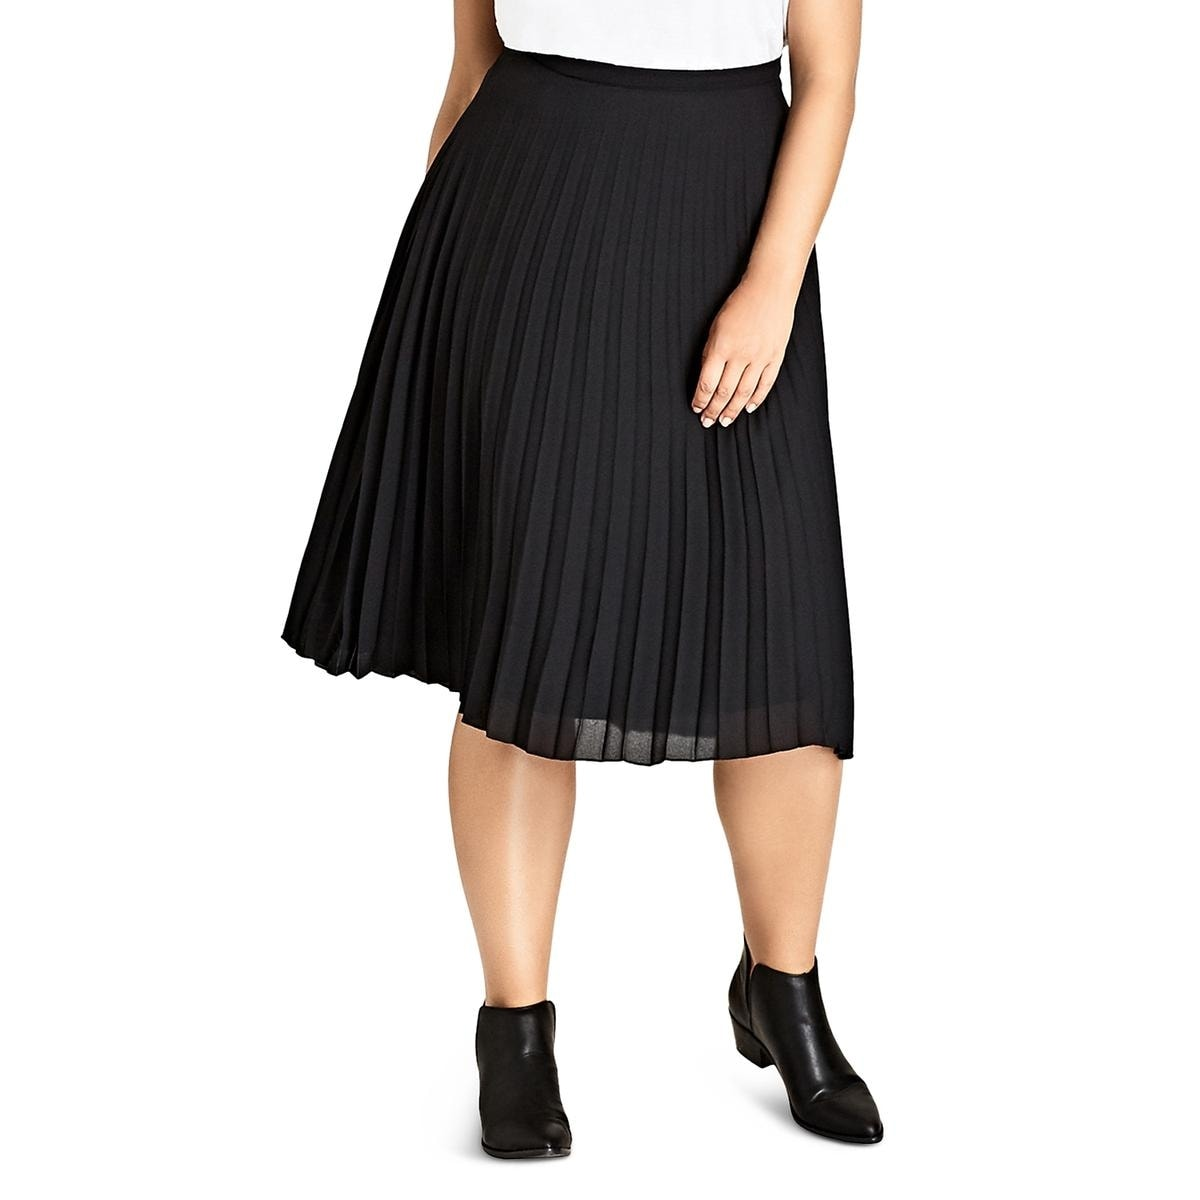 11437b9945 Shop City Chic Womens Midi Skirt Pleated A-Line - Free Shipping On Orders  Over $45 - Overstock - 26437500